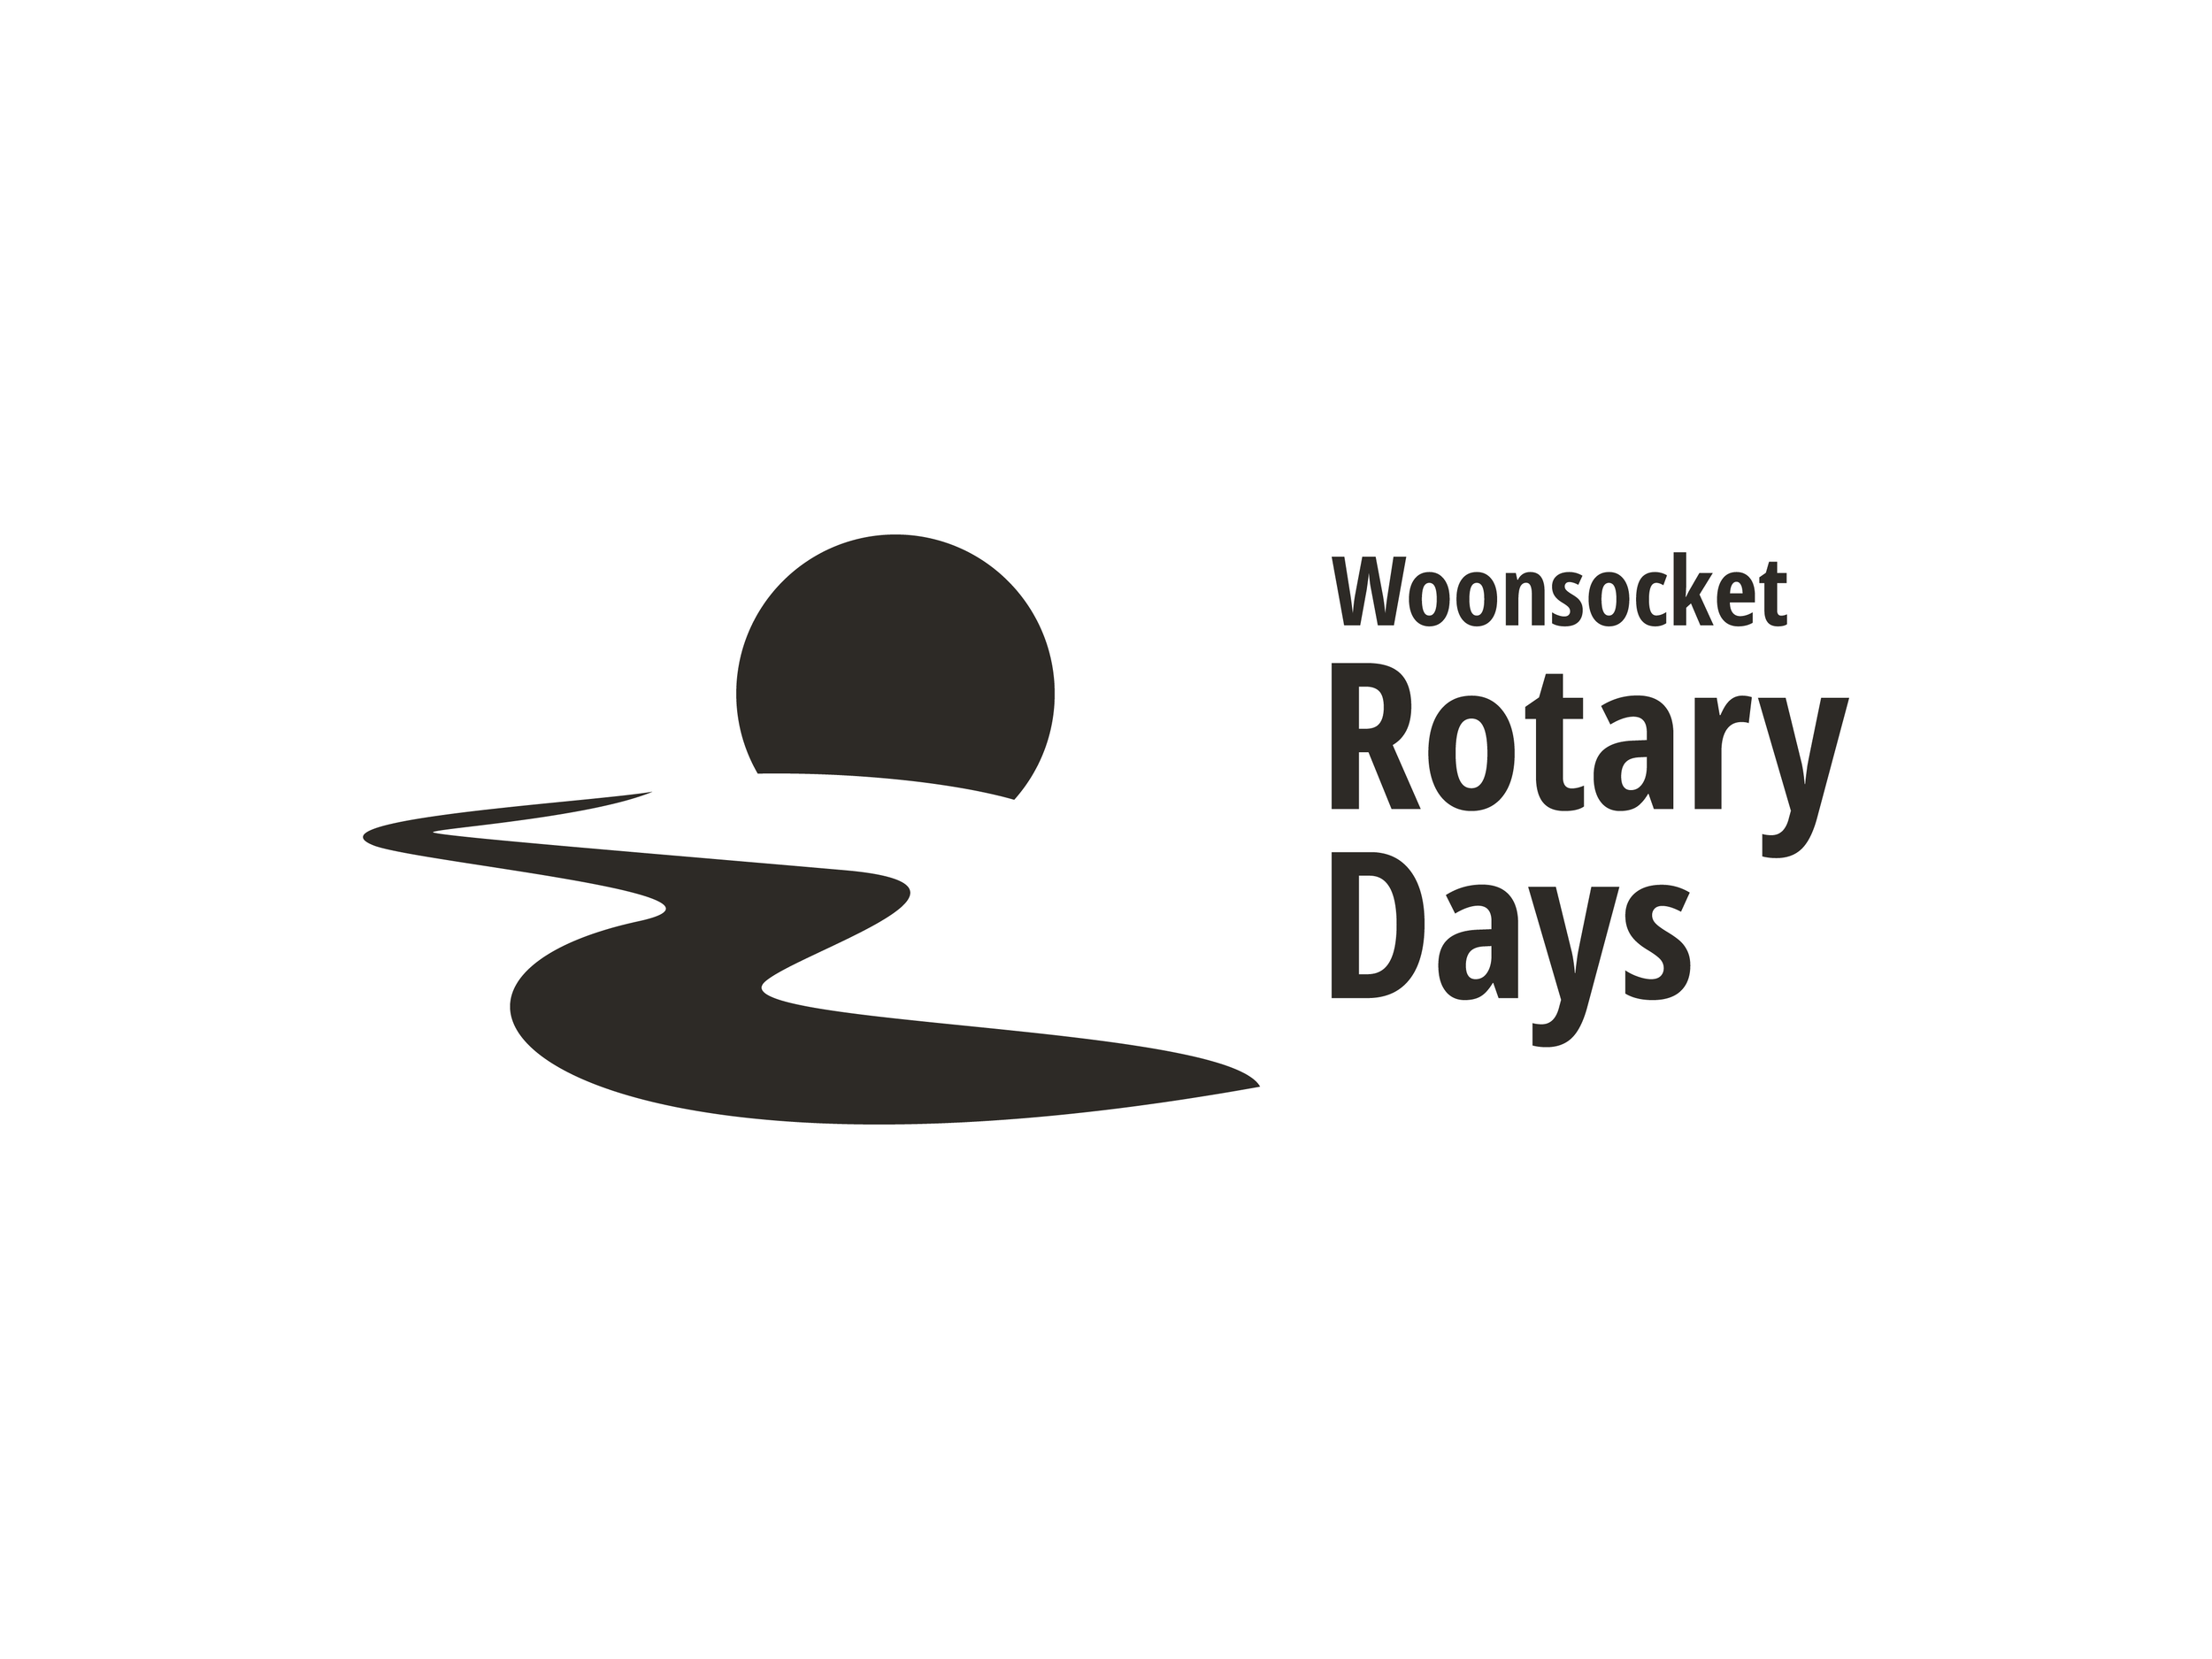 Woonsocket Rotary Days 2014 - Public Events